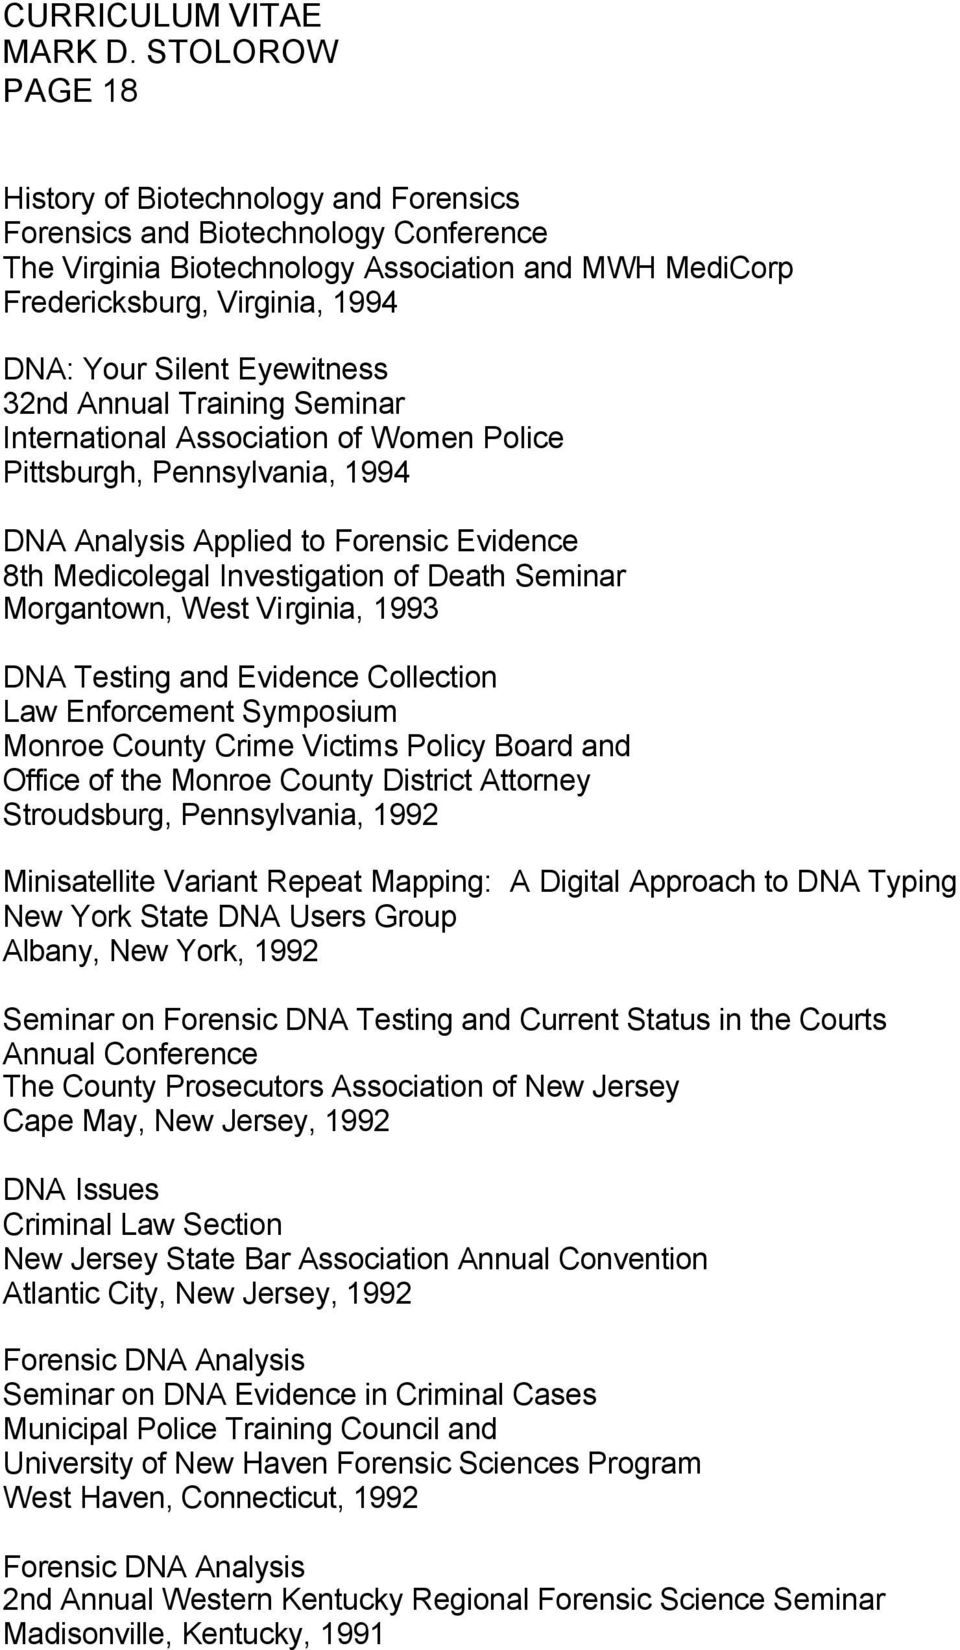 Seminar Morgantown, West Virginia, 1993 DNA Testing and Evidence Collection Law Enforcement Symposium Monroe County Crime Victims Policy Board and Office of the Monroe County District Attorney